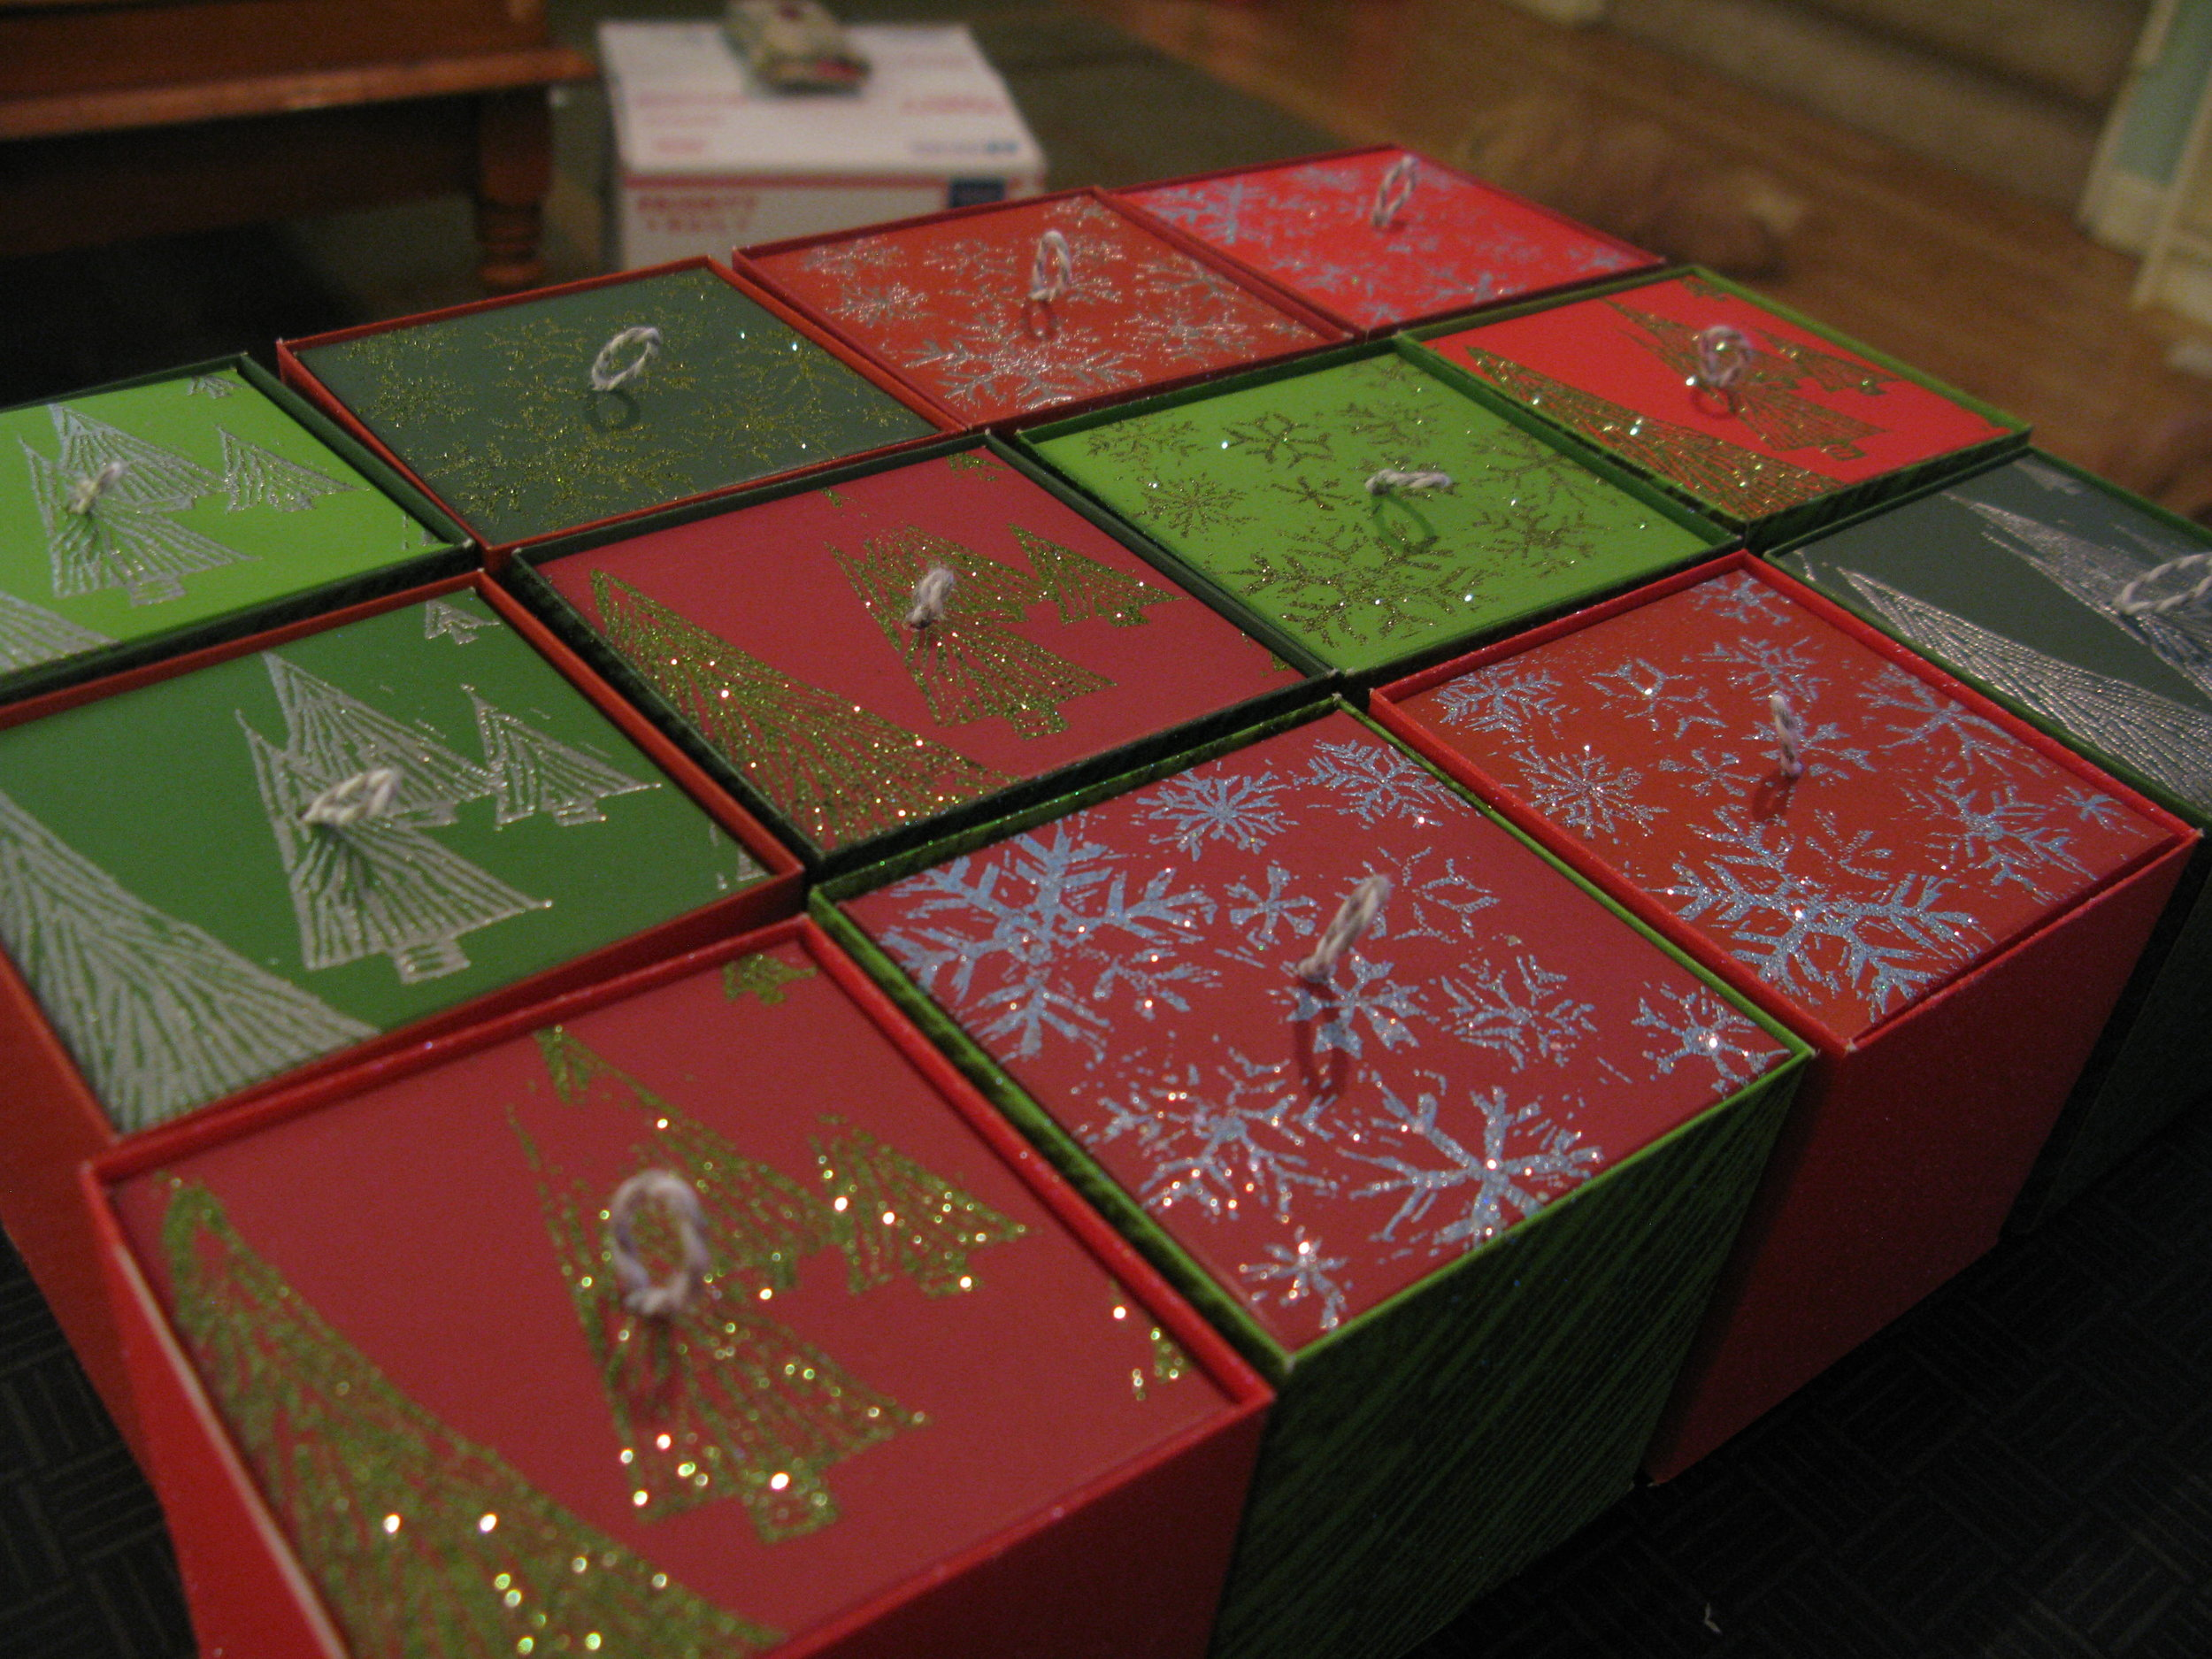 Boxes made from scrapbooking paper, decorated with hand cut stamps